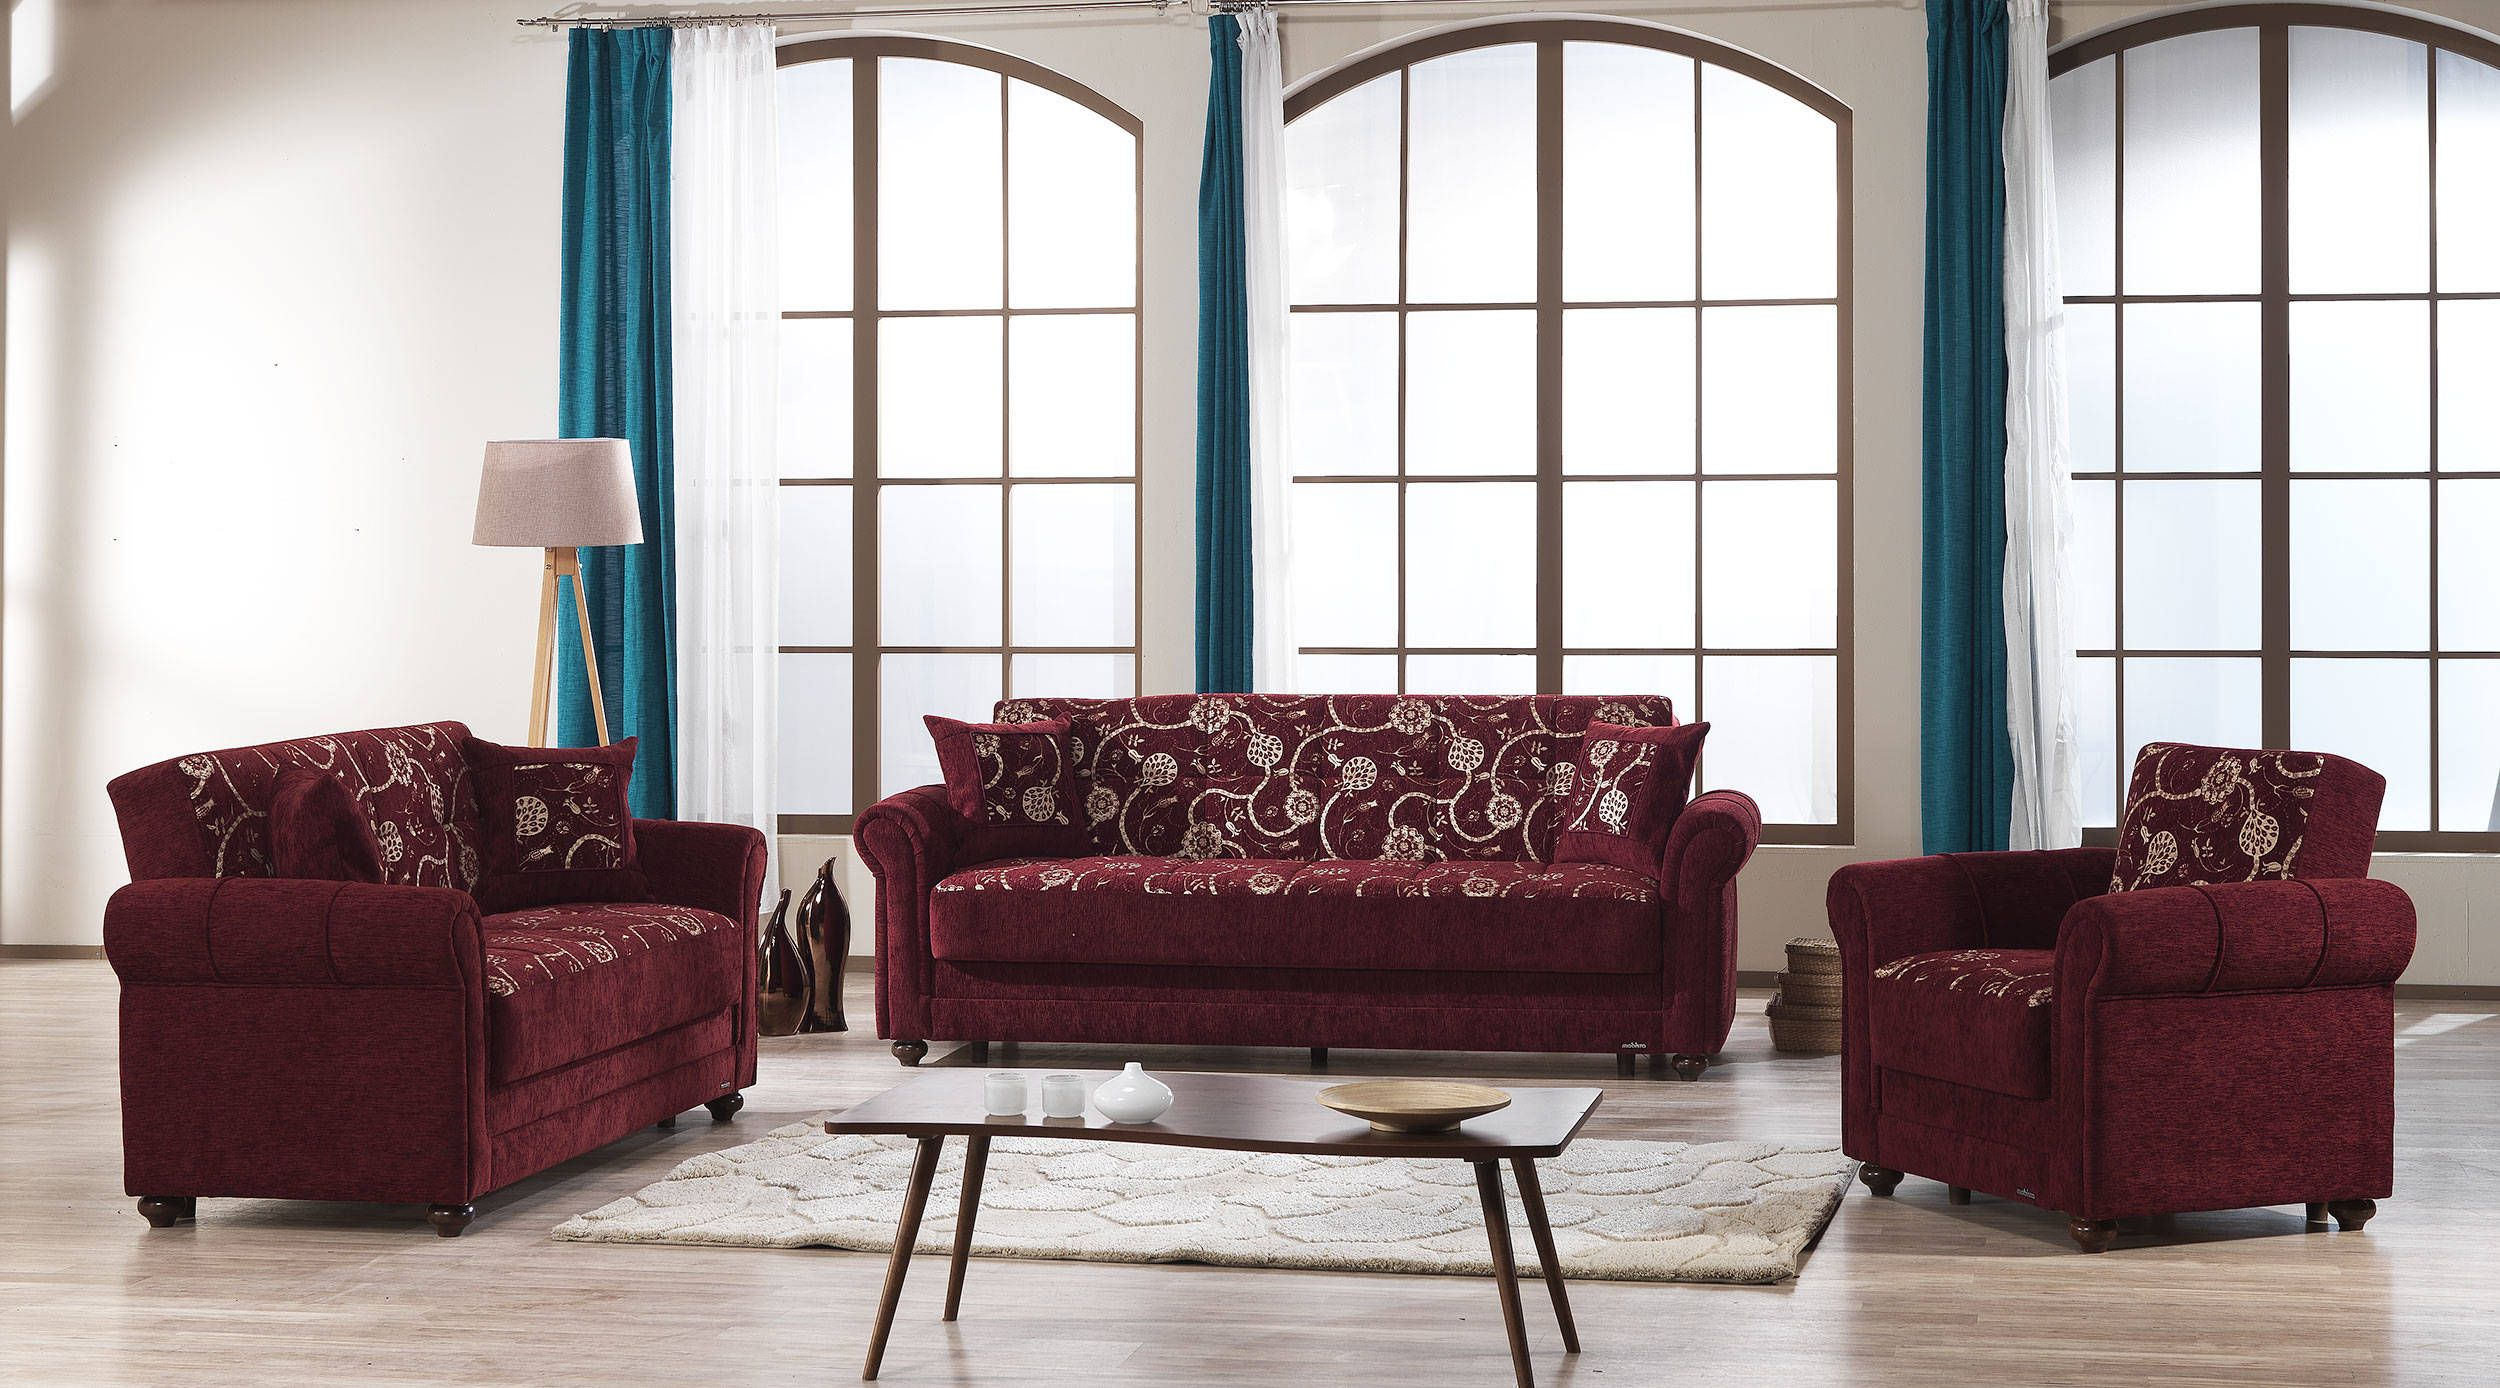 Room · Regina Home Burgundy Fabric MDF Plywood 3pc Living Room Set